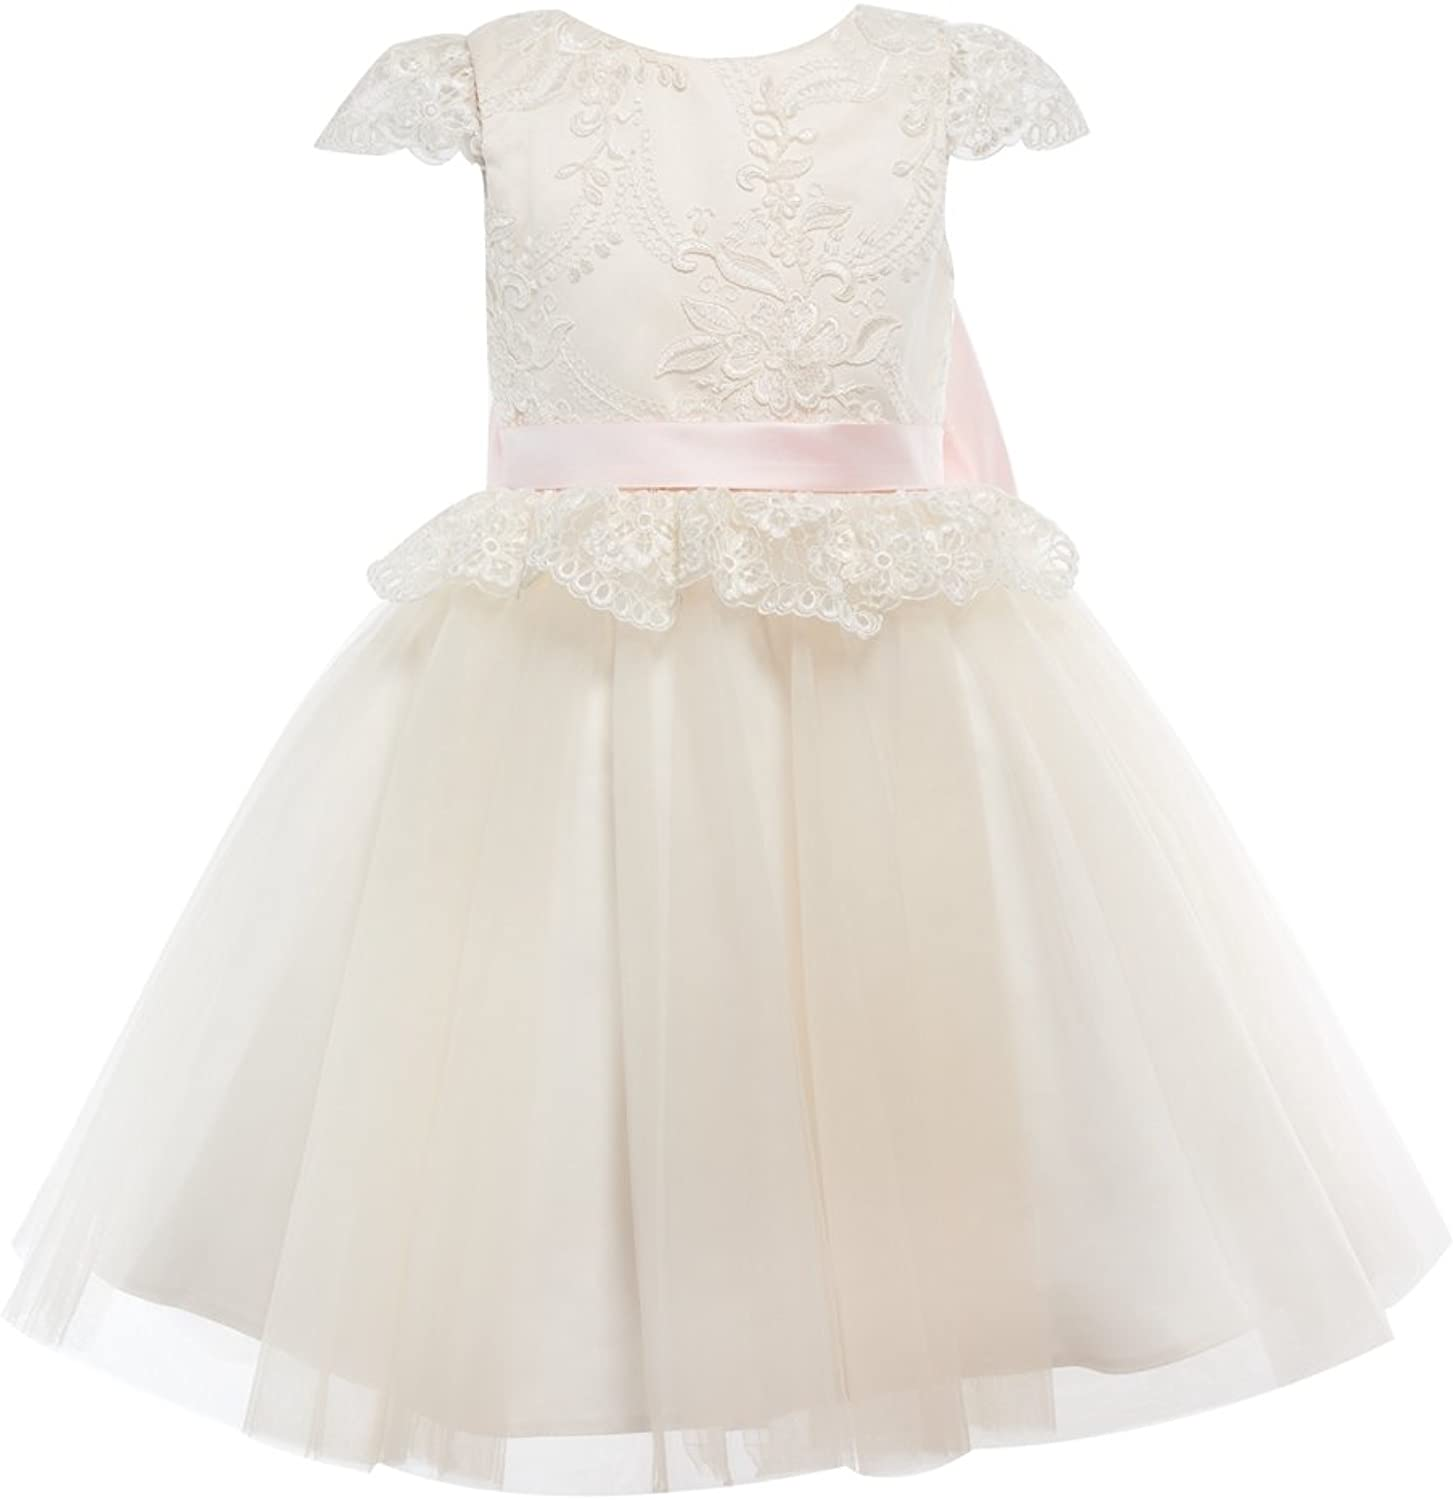 Miama Ivory Lace Champagne Tulle Cap Sleeves Wedding Flower Girl Dress Junior Bridesmaid Dress